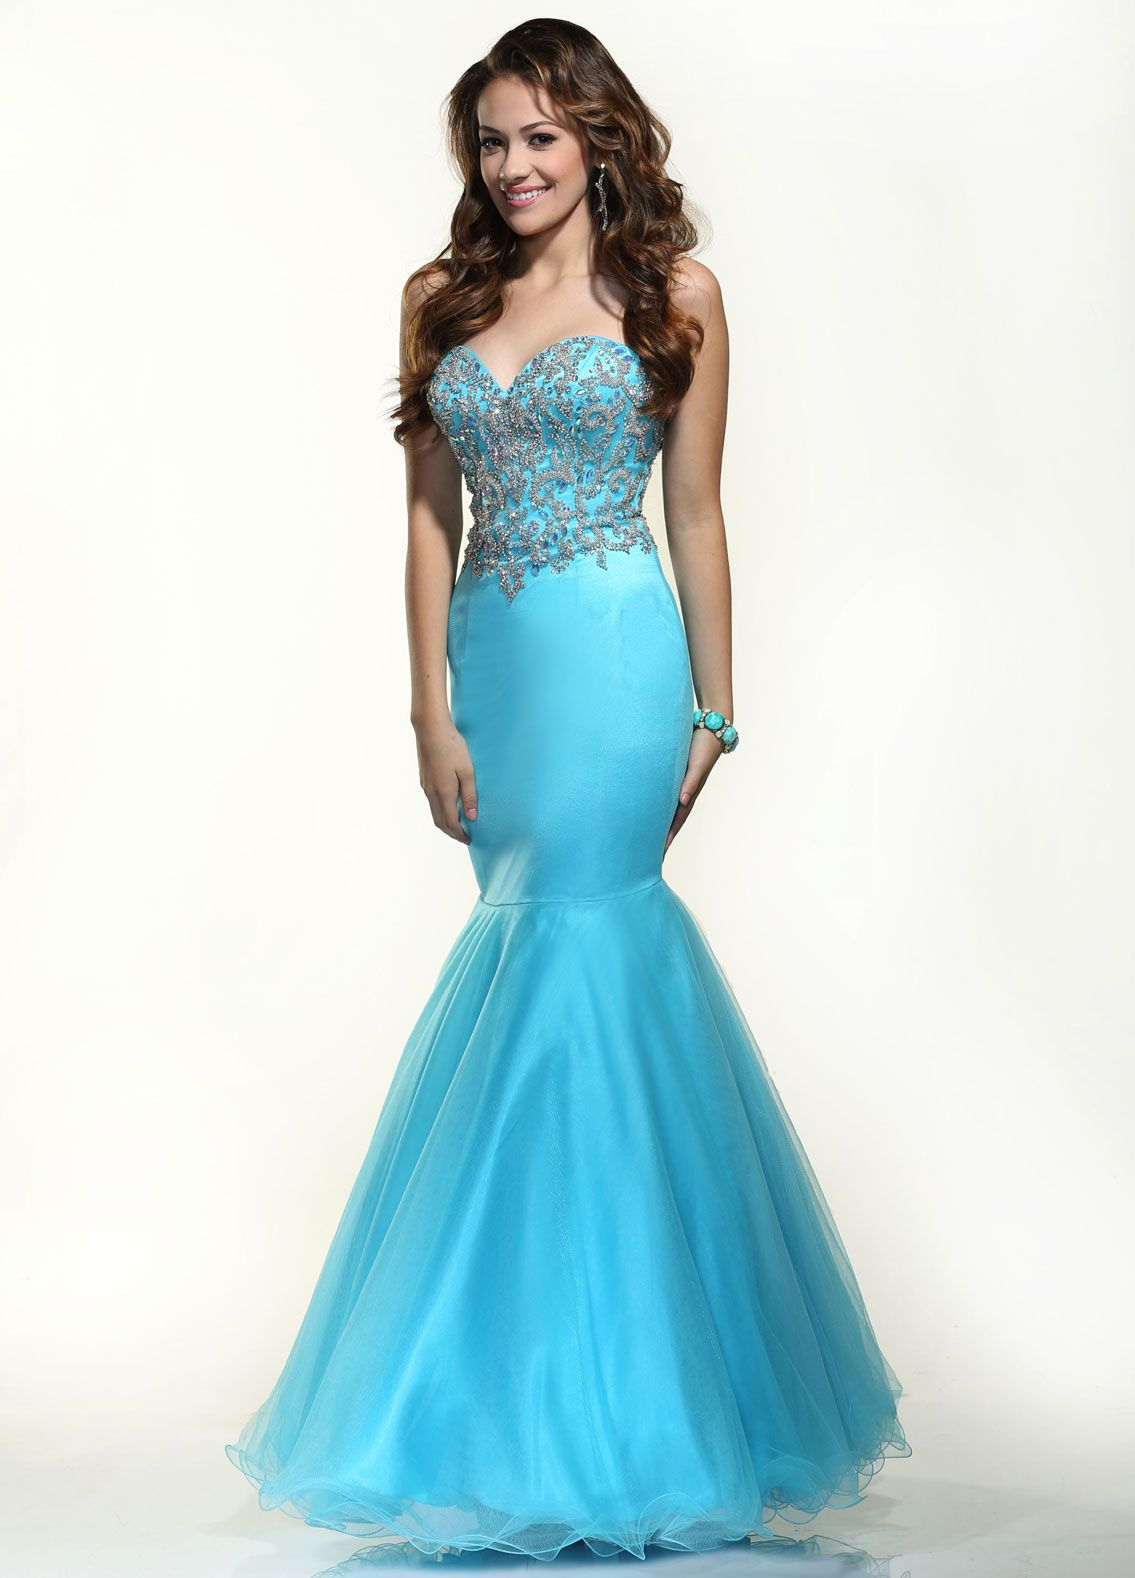 Disney forever enchanted prom dresses also in coral and lilac